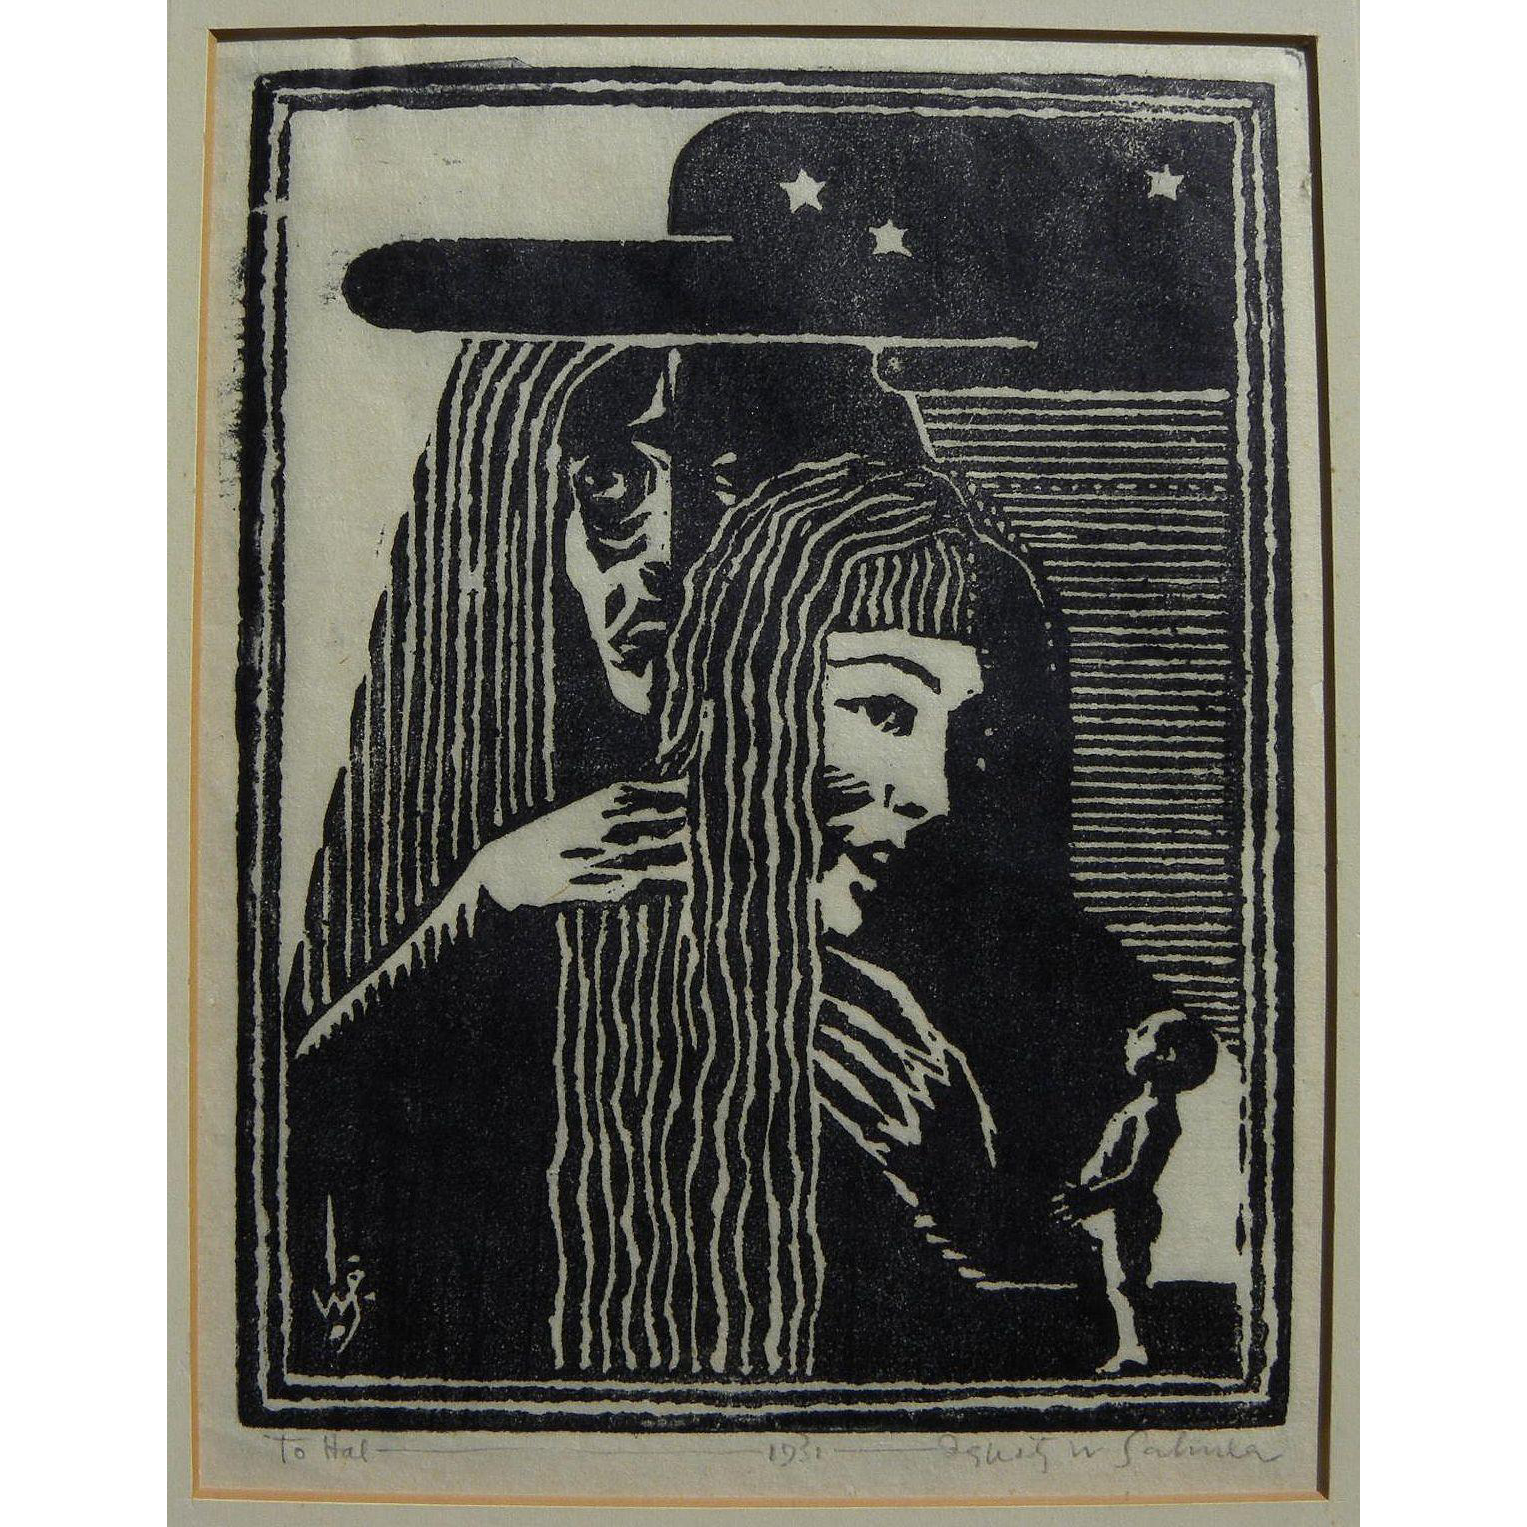 IGNATZ SAHULA-DYCKE (1900-1982) woodblock signed 1931 print by Czech-born artist and illustrator